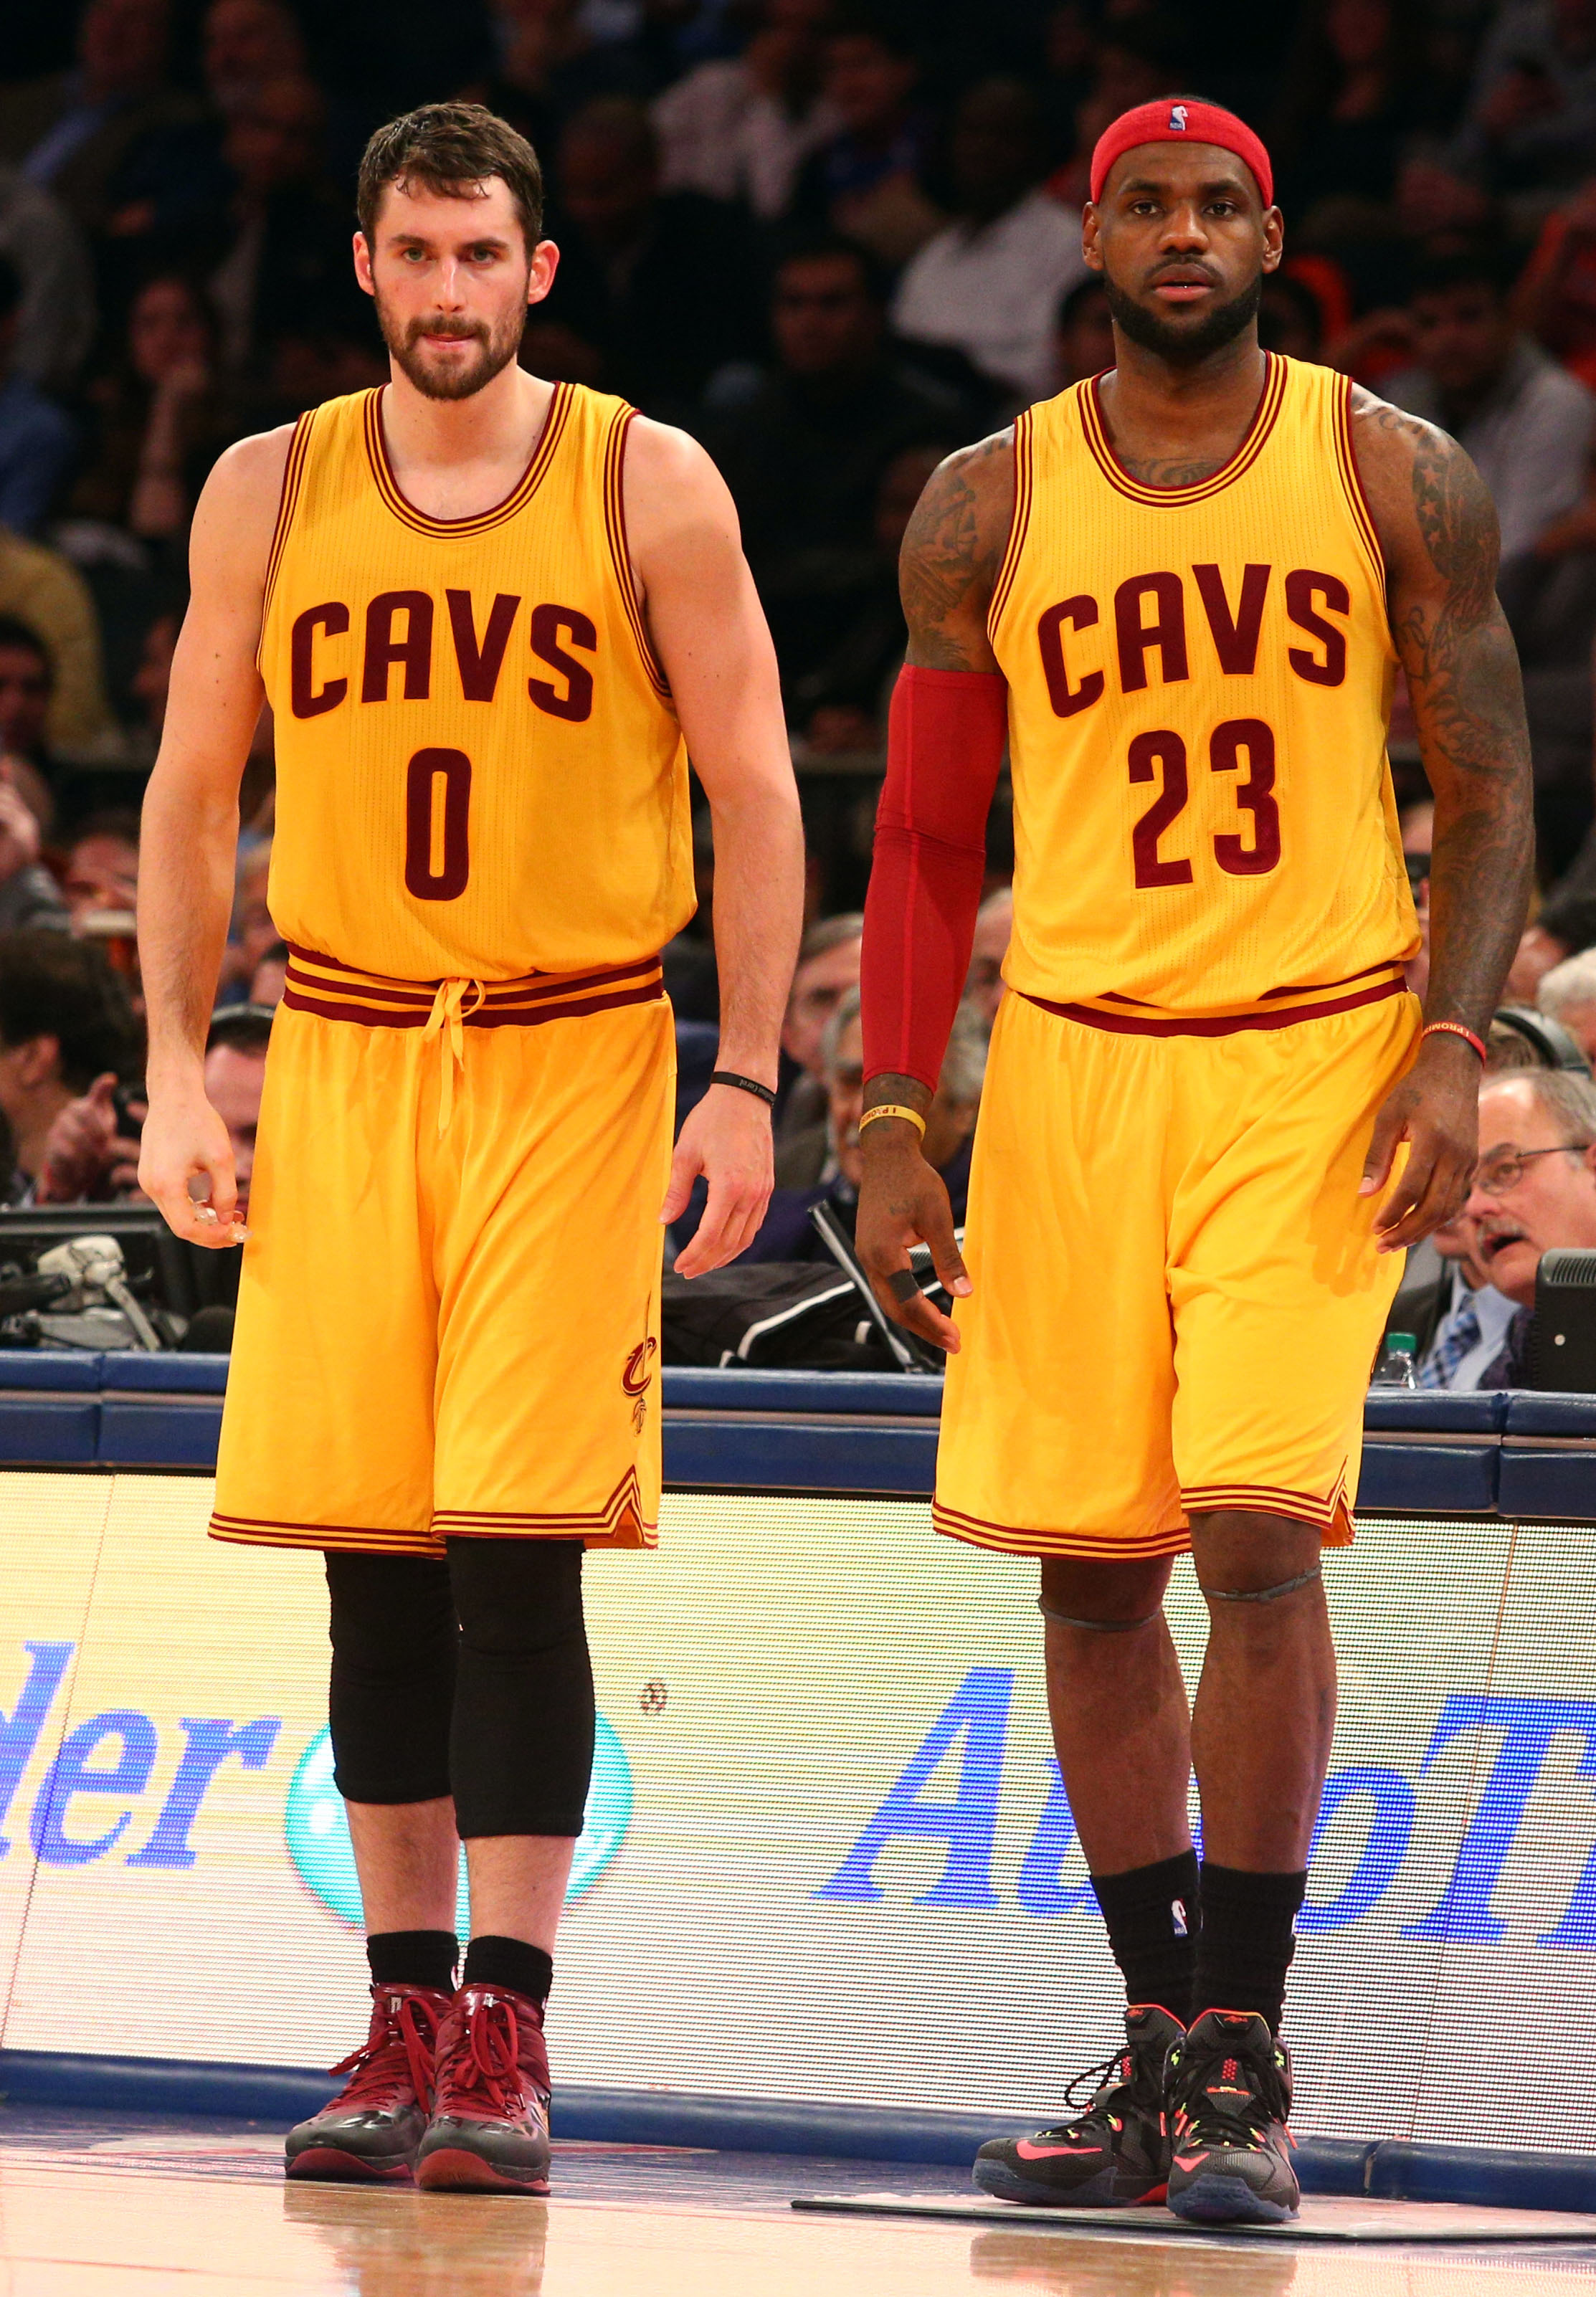 LeBron James 'frustrated' by his relationship with Kevin Love, according to report